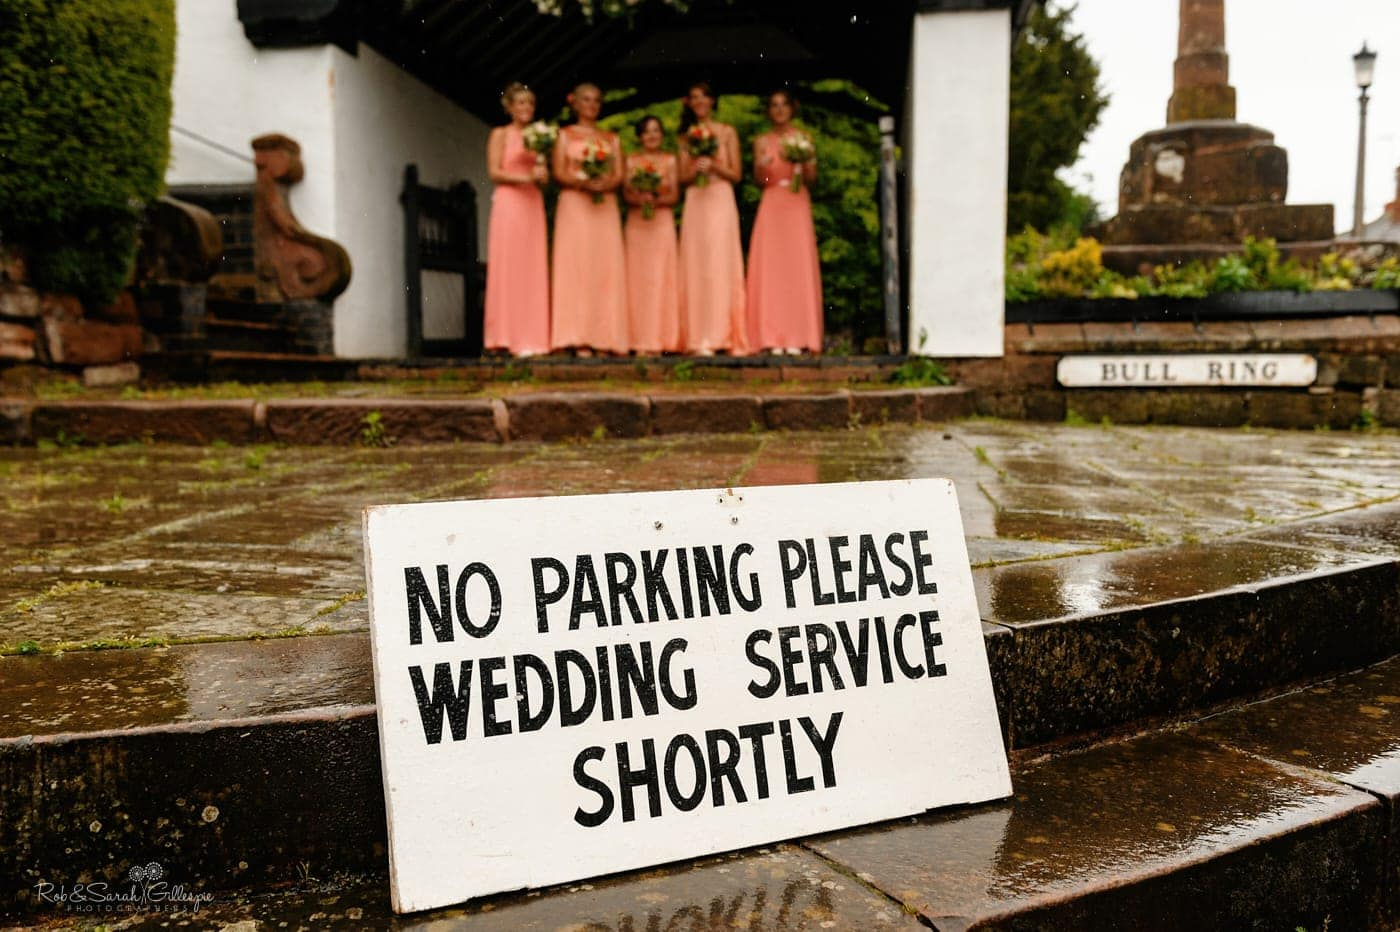 No parking sign outside church with bridesmaids in background